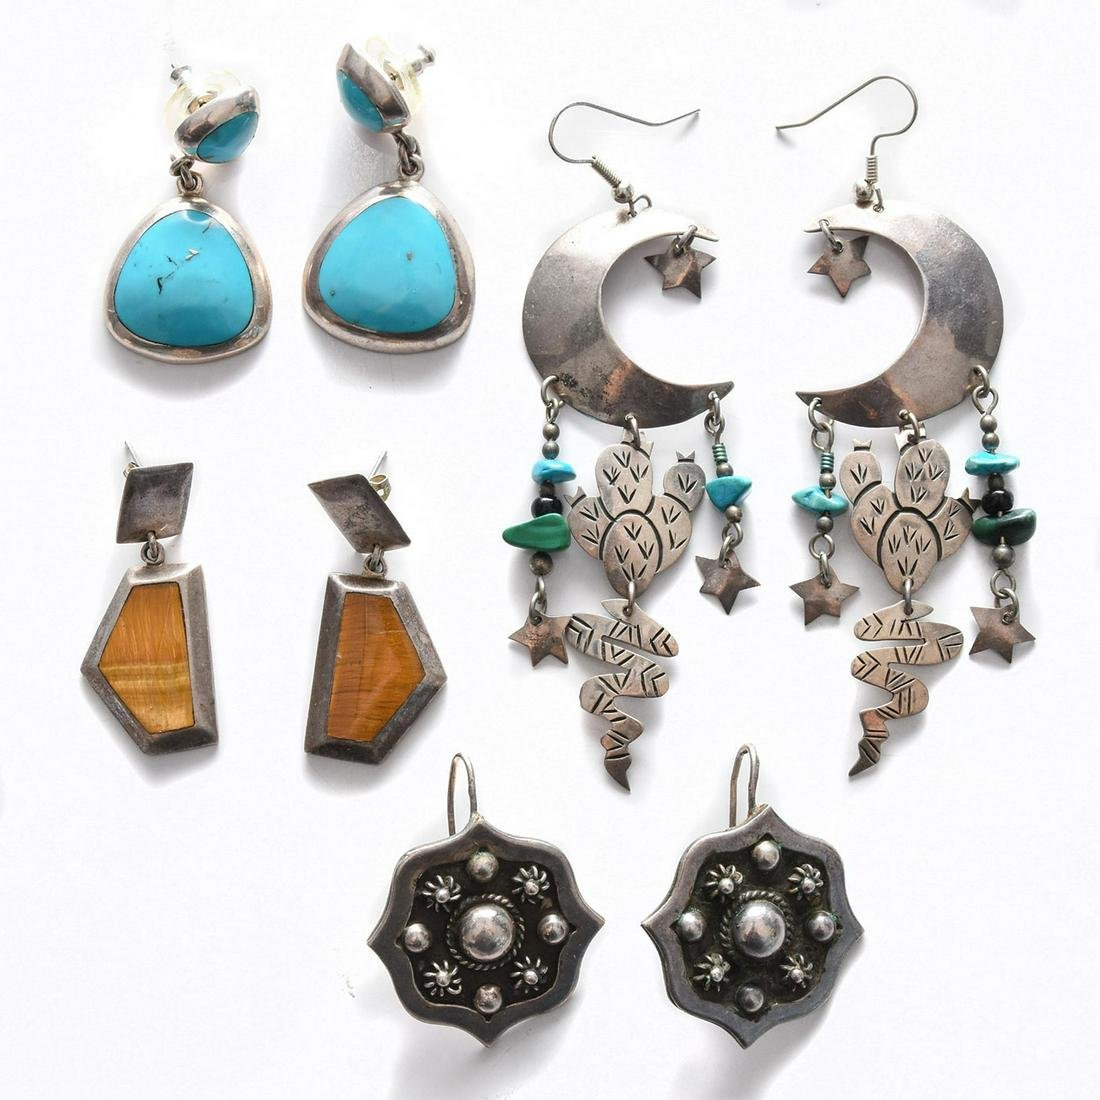 4 PAIRS, MEXICAN SILVER EARRINGS